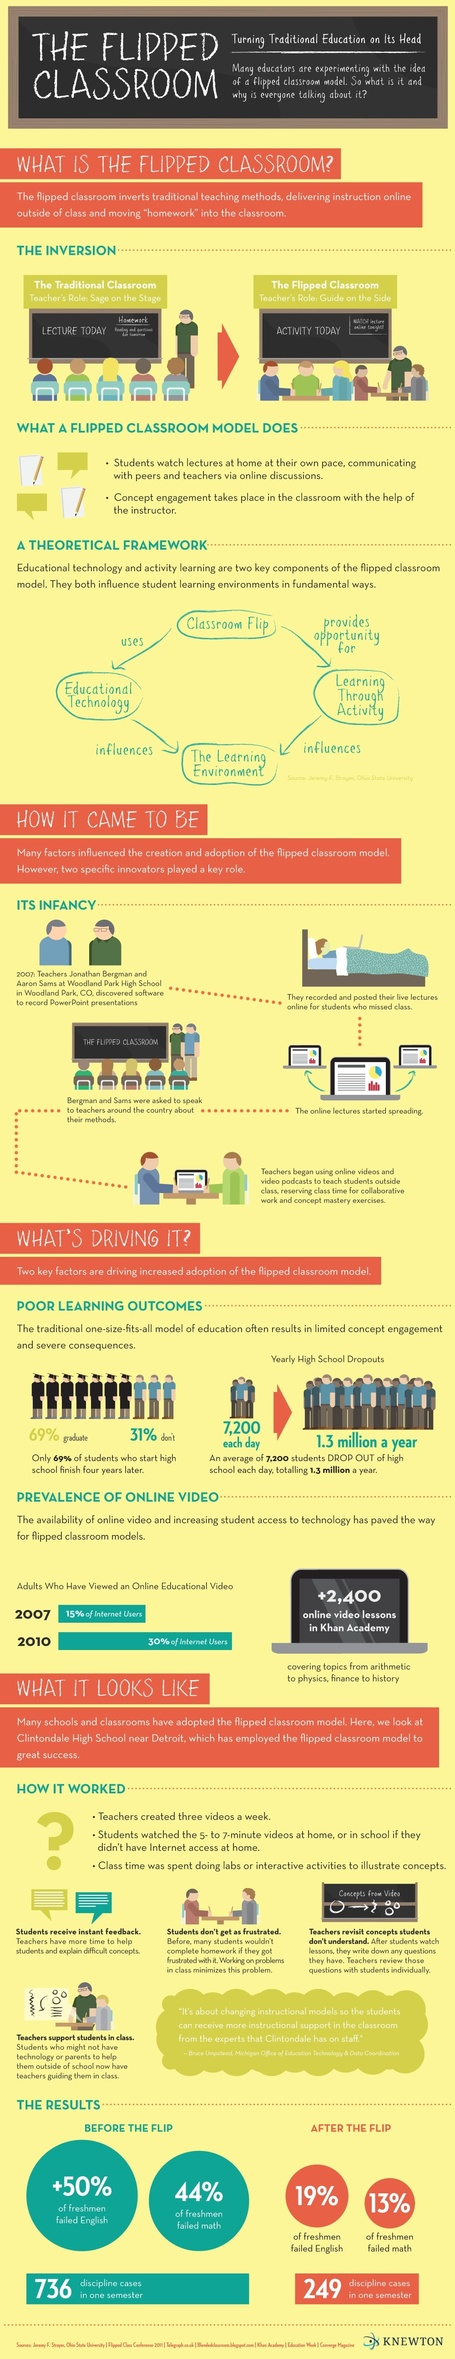 Interesting Infographics: 'The Flipped Classroom' and 'Blended Learning' | social media and digital marketing | Scoop.it